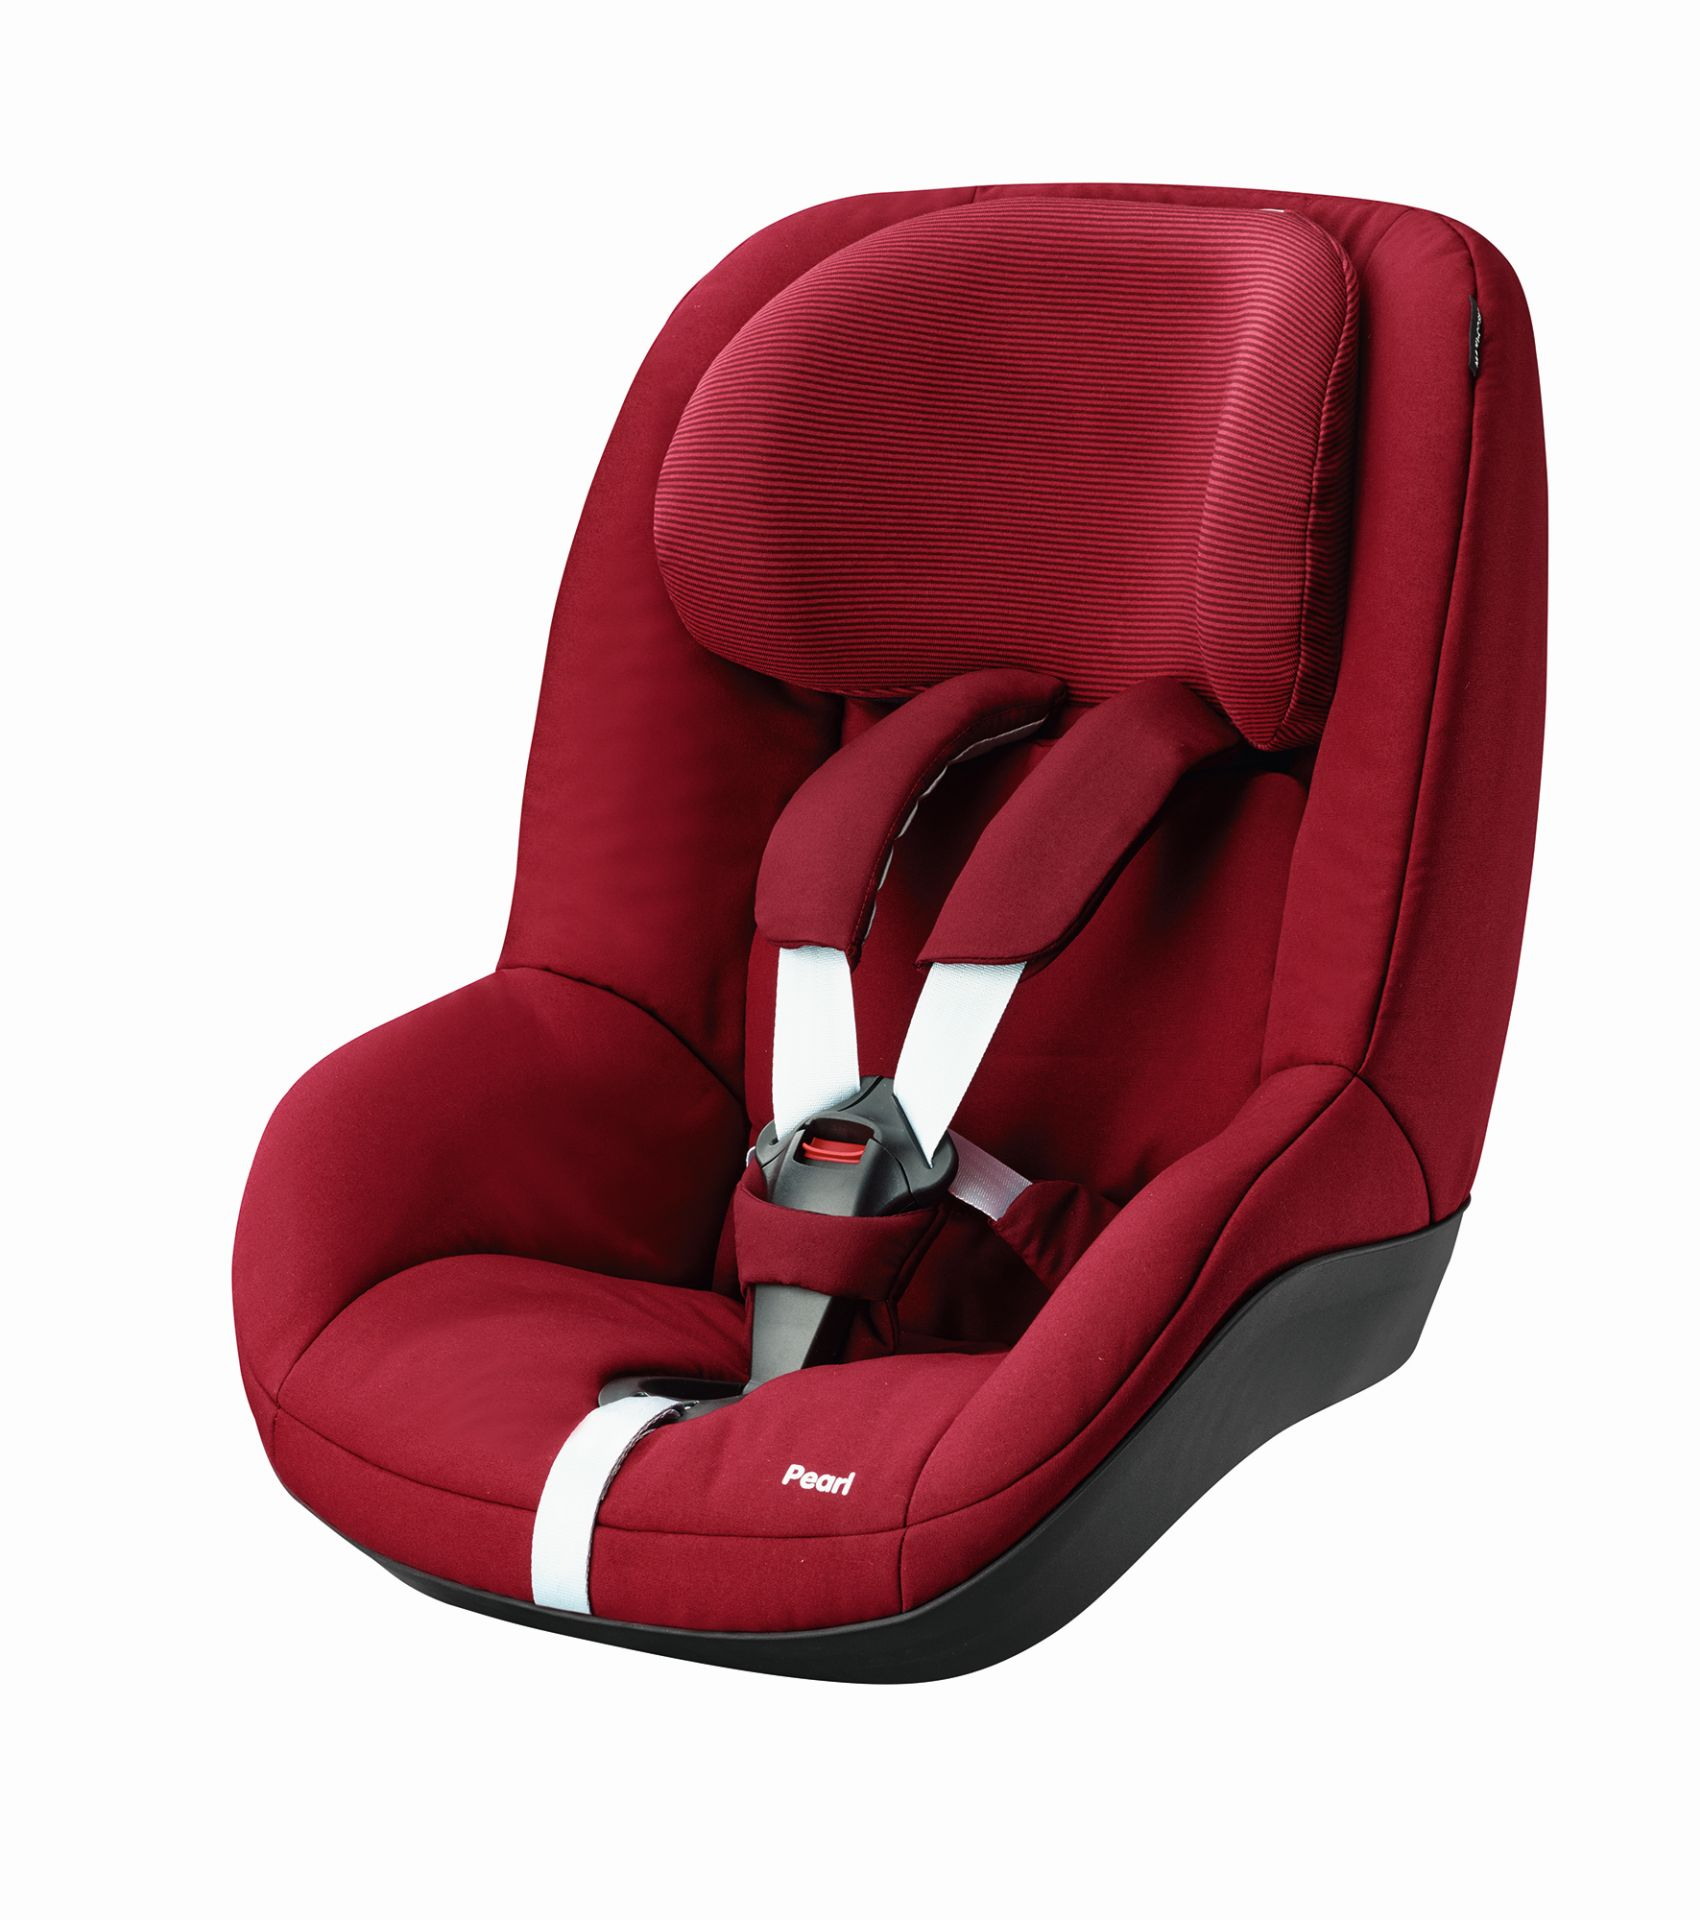 maxi cosi child car seat pearl 2017 robin red buy at kidsroom car seats. Black Bedroom Furniture Sets. Home Design Ideas